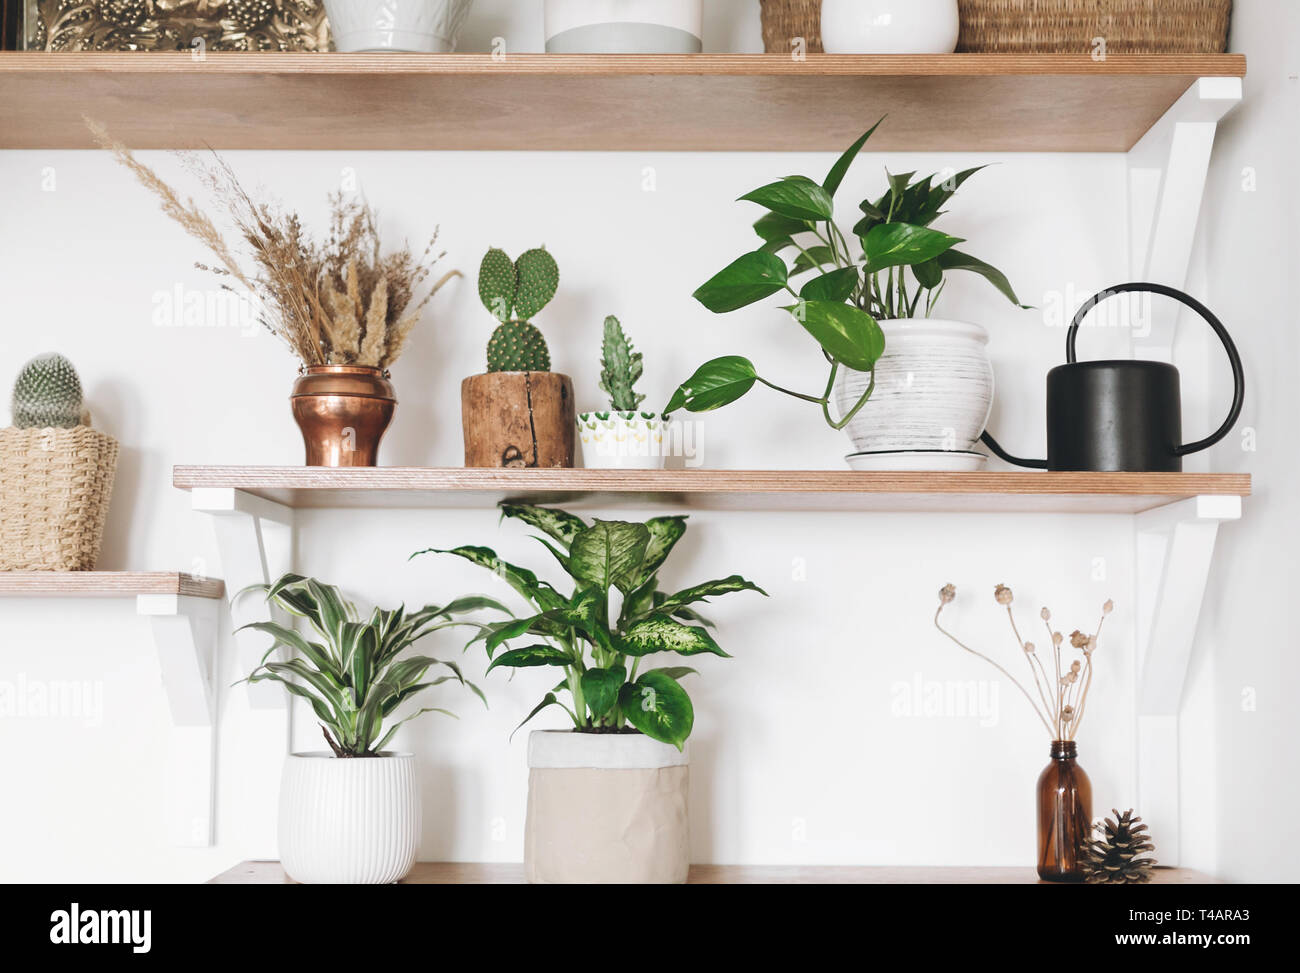 Stylish Wooden Shelves With Green Plants, Black Watering Can, Boho